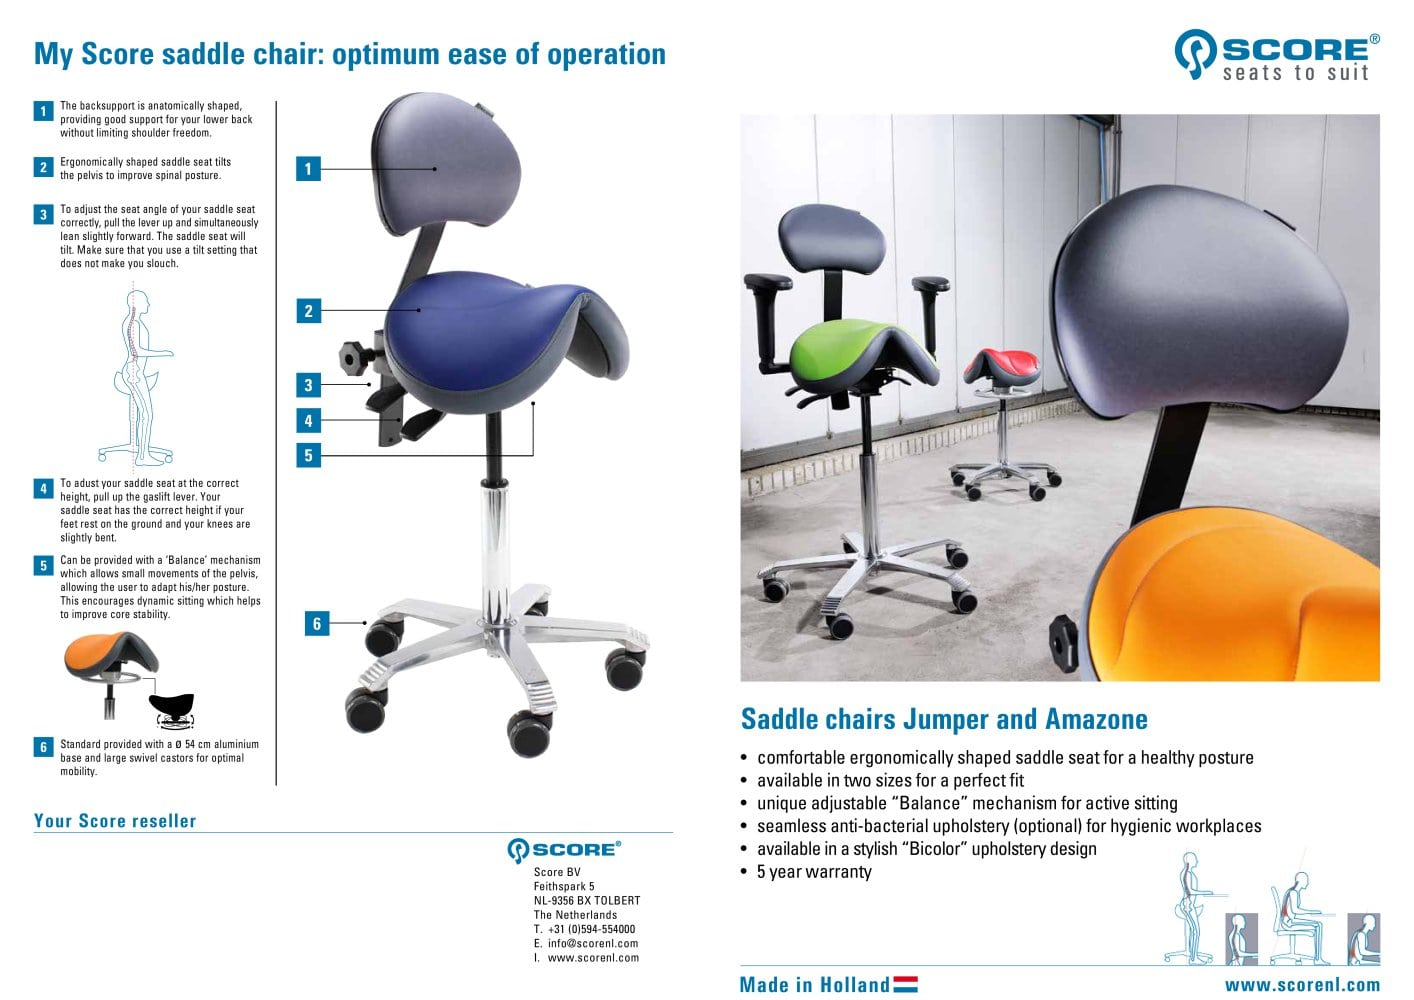 balance posture chair wheel for dogs score saddle seat bv pdf catalogs technical documentation 1 2 pages